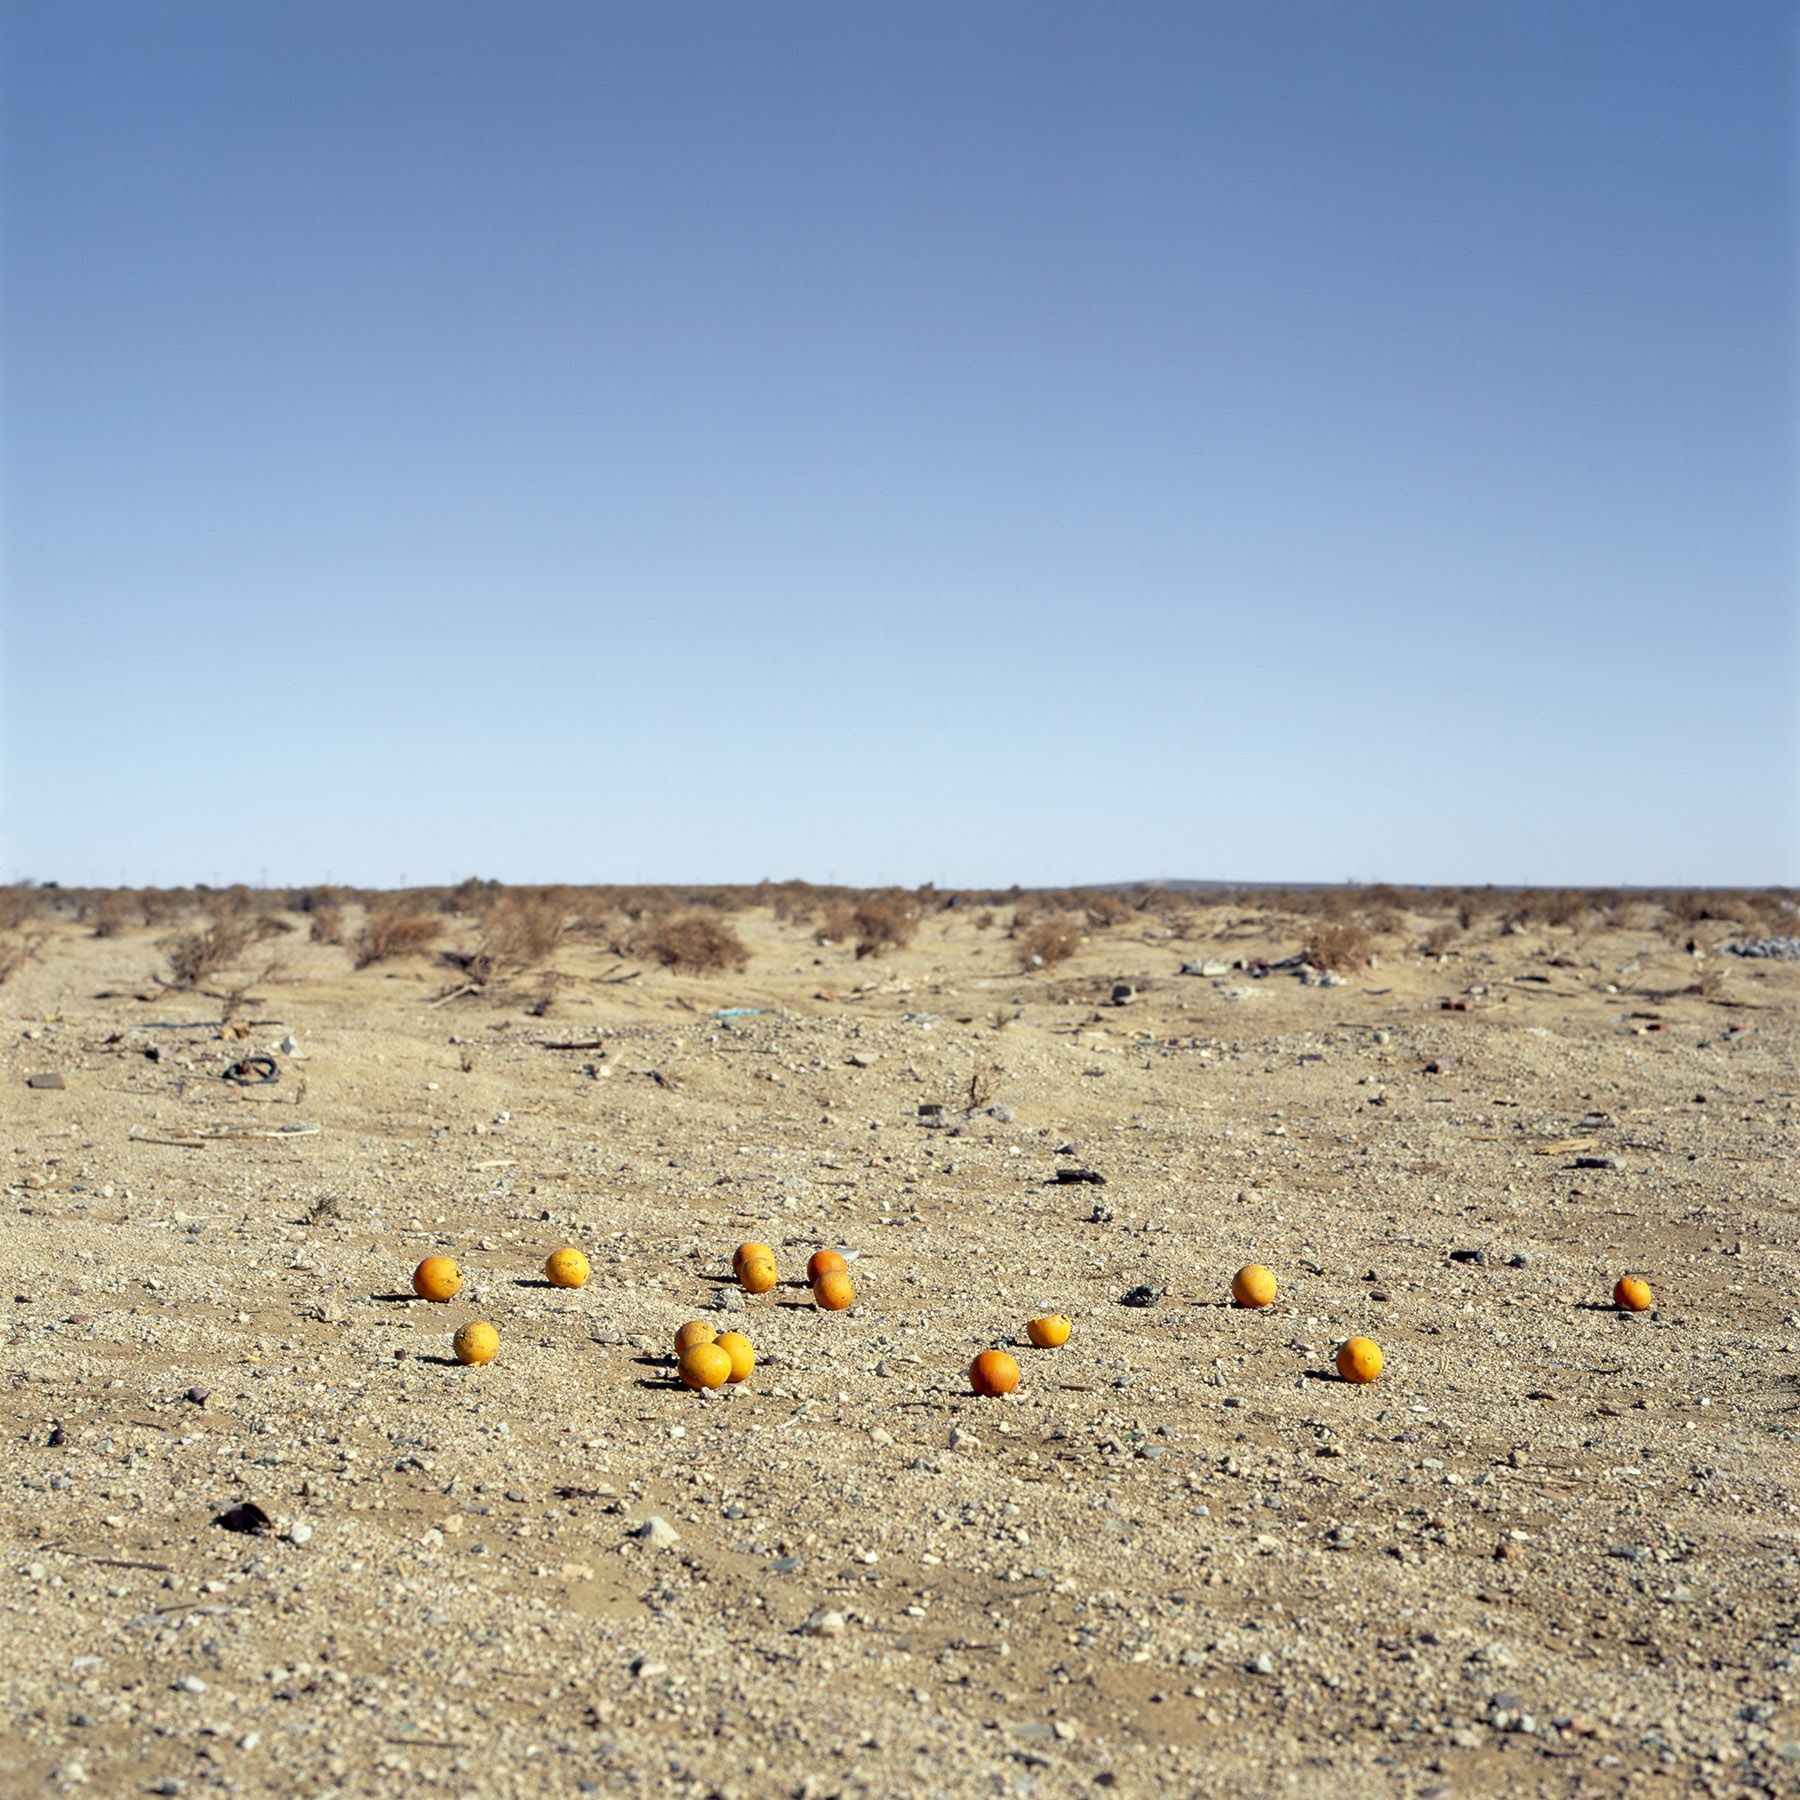 Discarded #9, 2012. Archival pigment print. Image dimensions 40 x 40 inches, frame dimensions 47 x 47 inches.